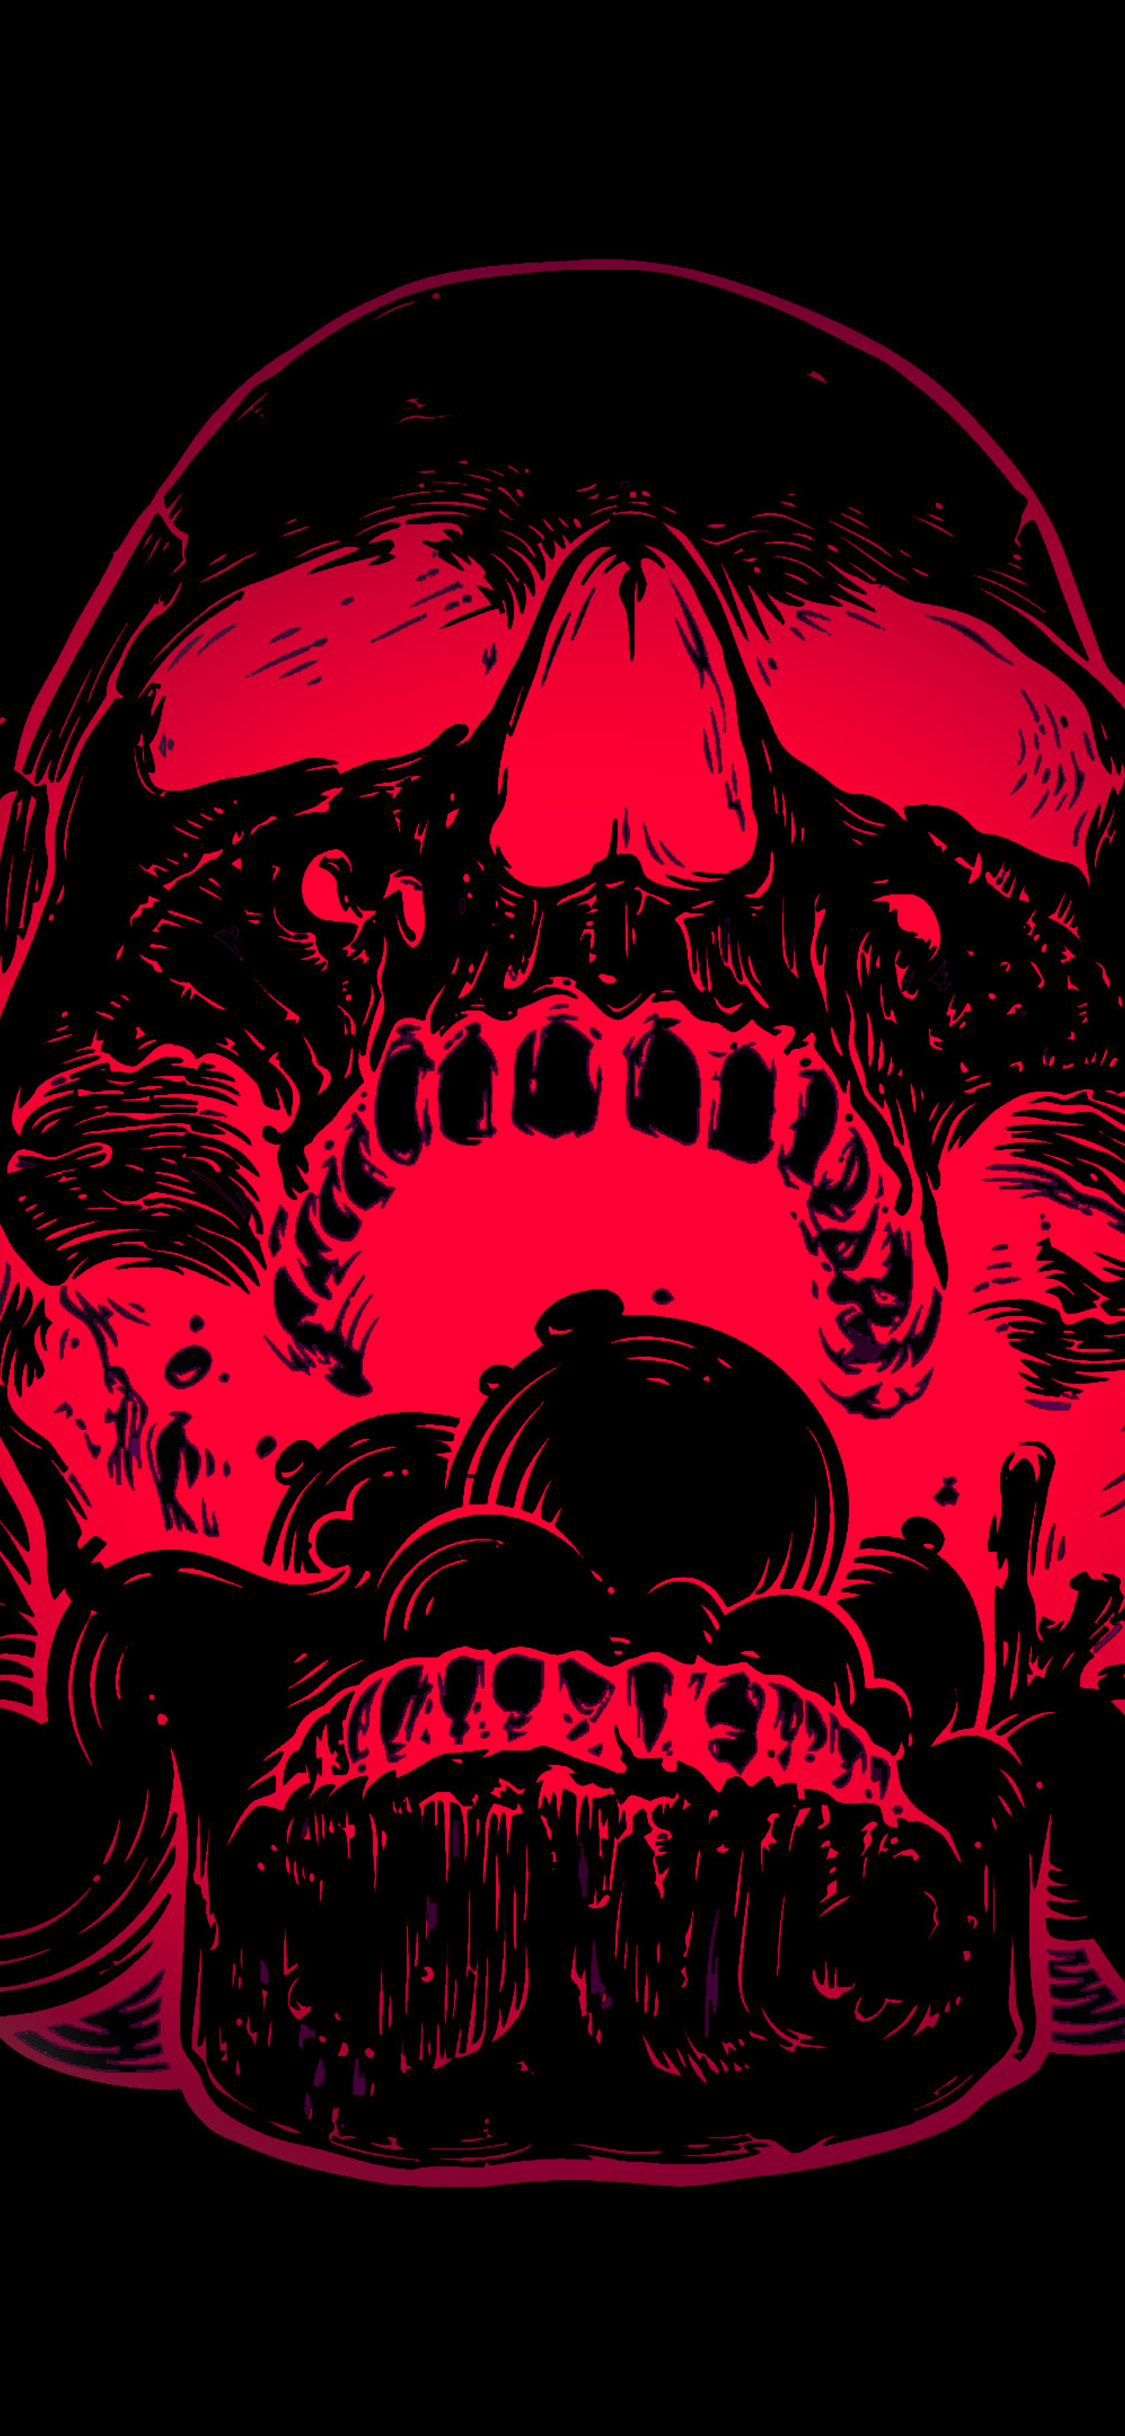 1125x2436 Red Skull Flowers Black Background 4k Iphone Xs Iphone 10